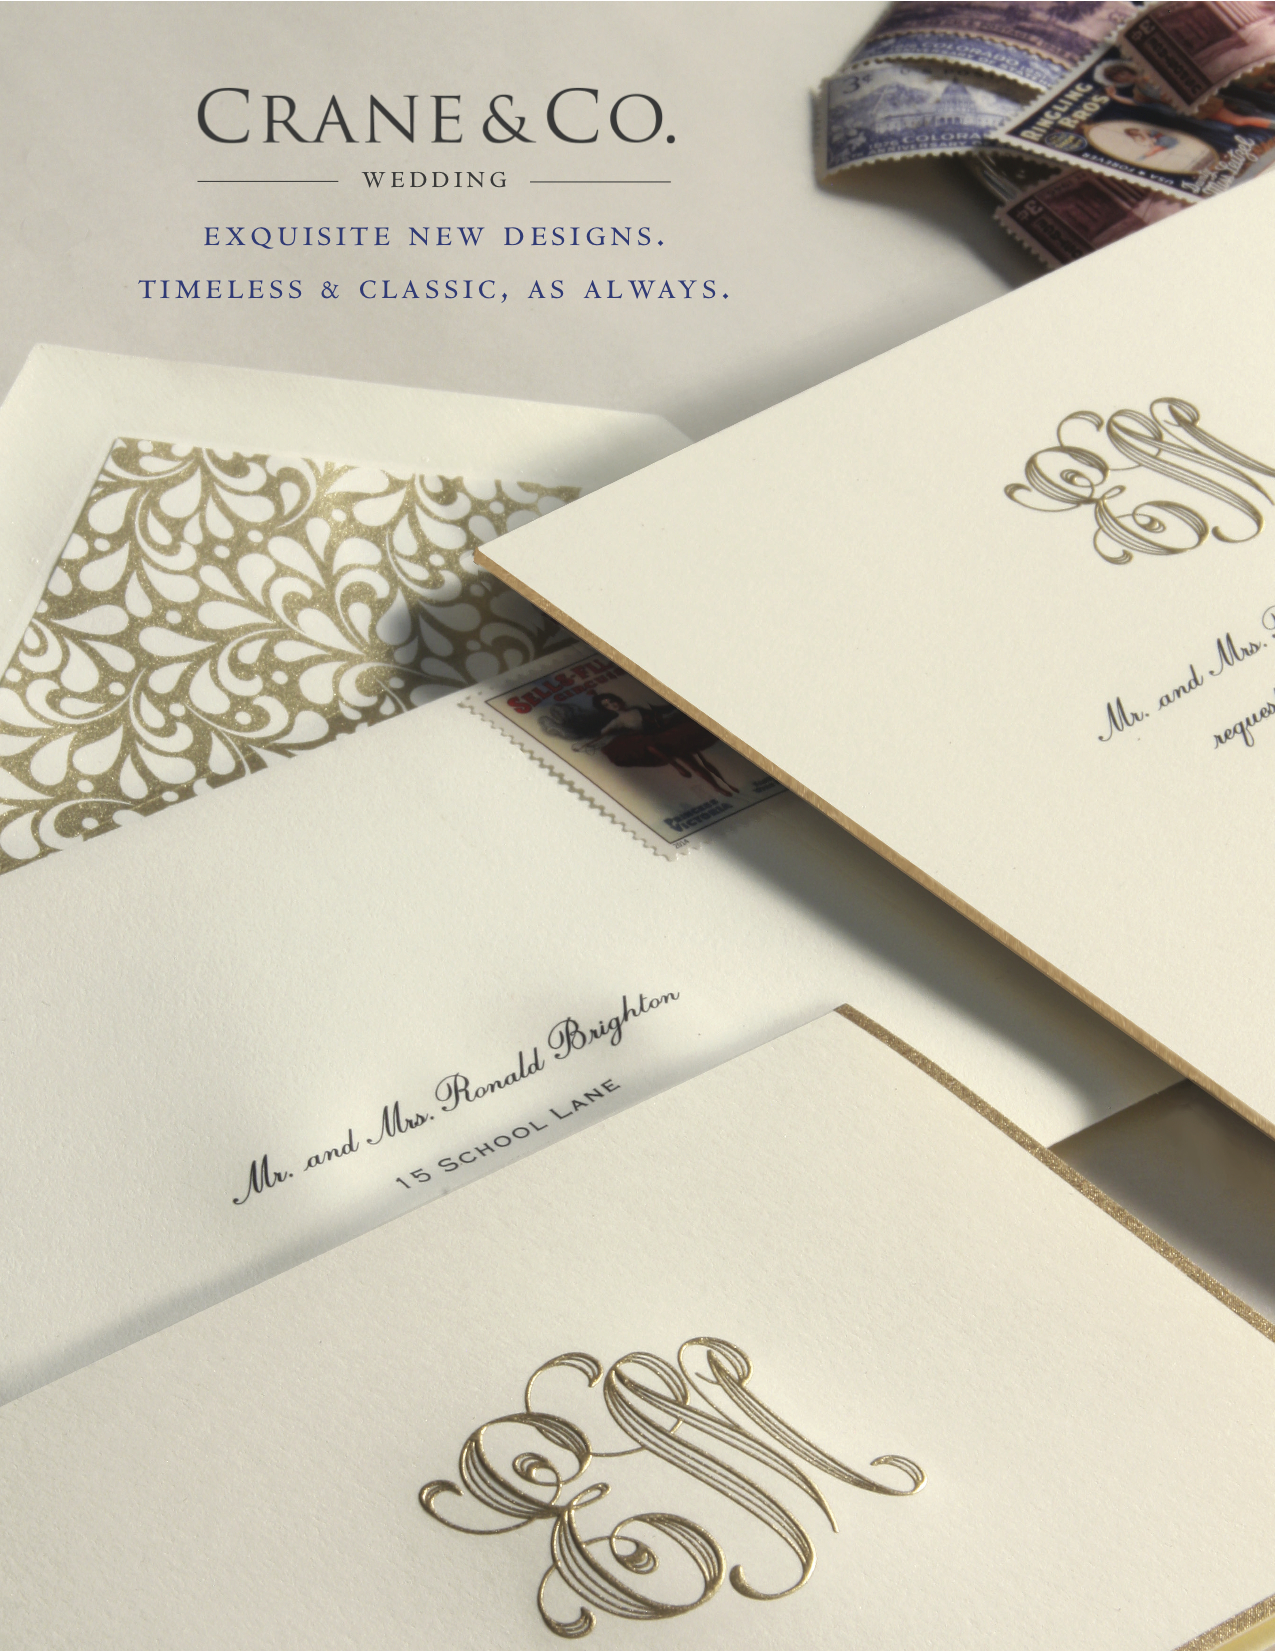 New Wedding Invitations from Crane & Co | Sweet Paper